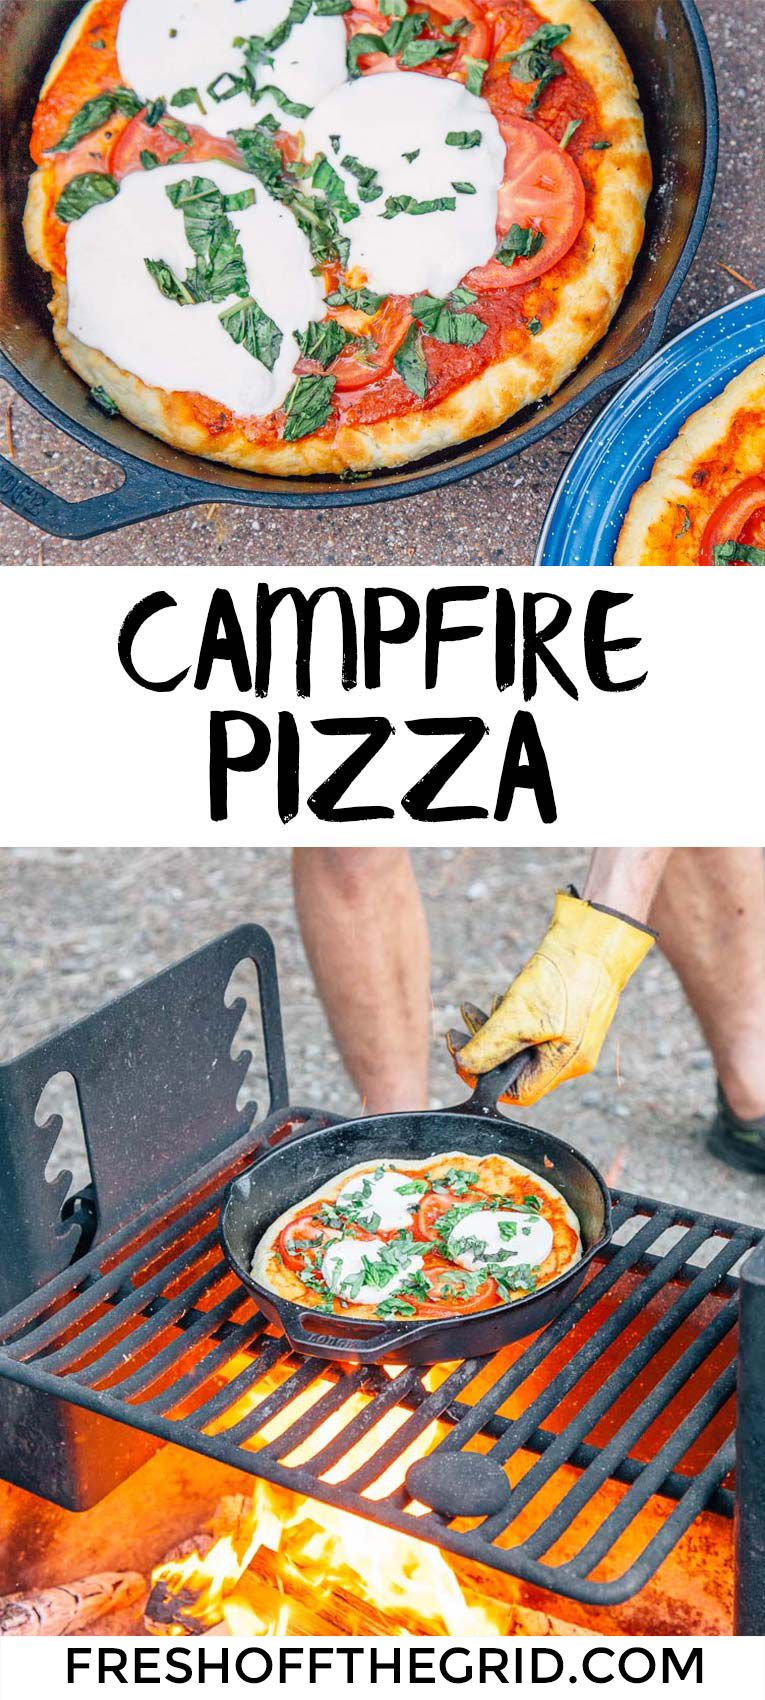 Photo of How to Make Campfire Pizza from Scratch